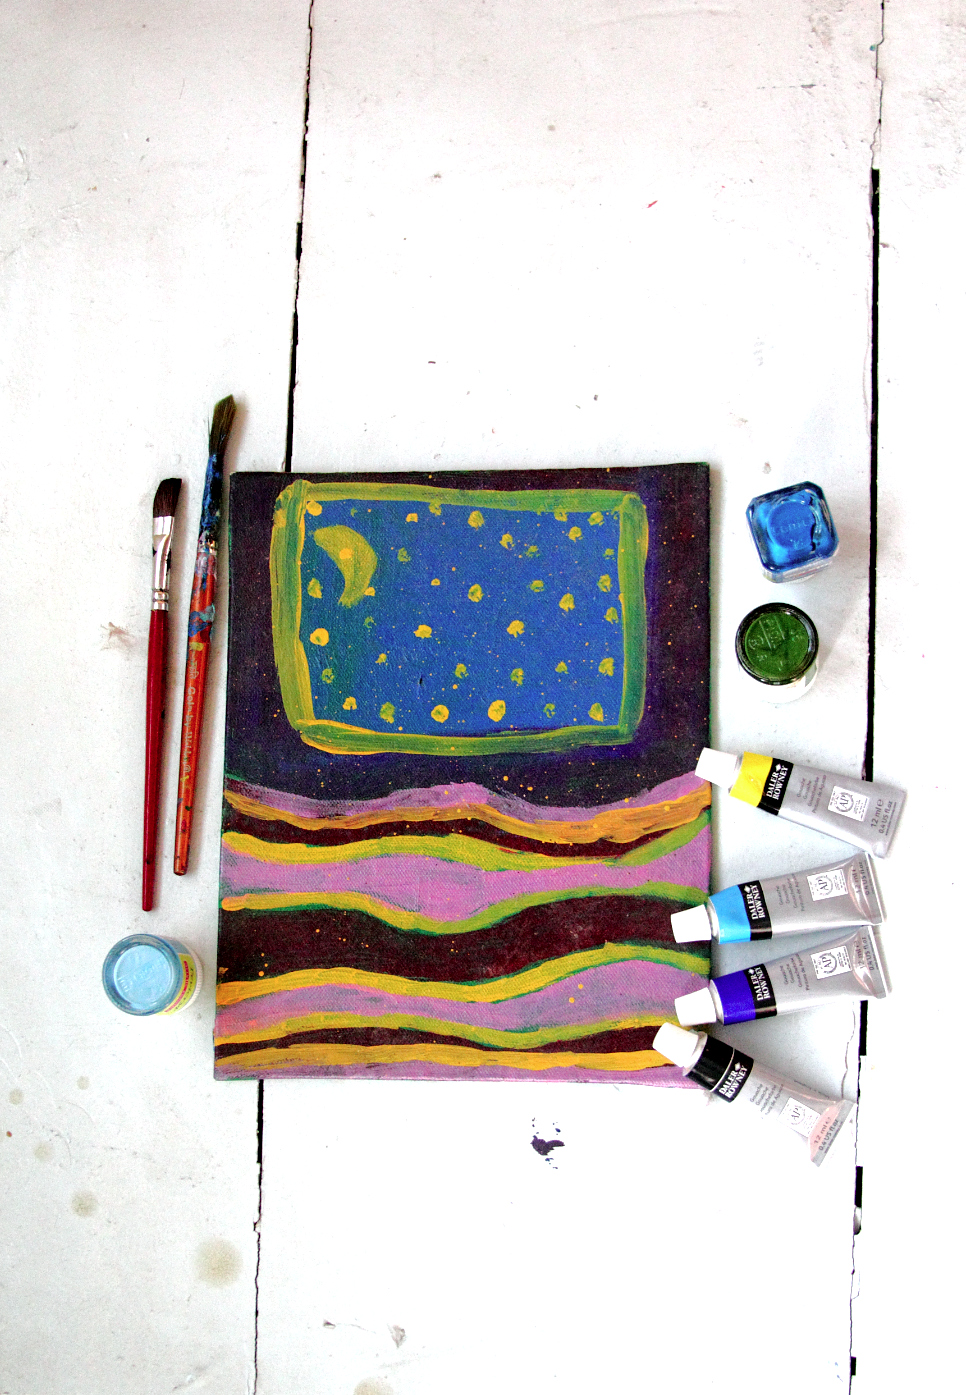 Tips While Making Abstract Art